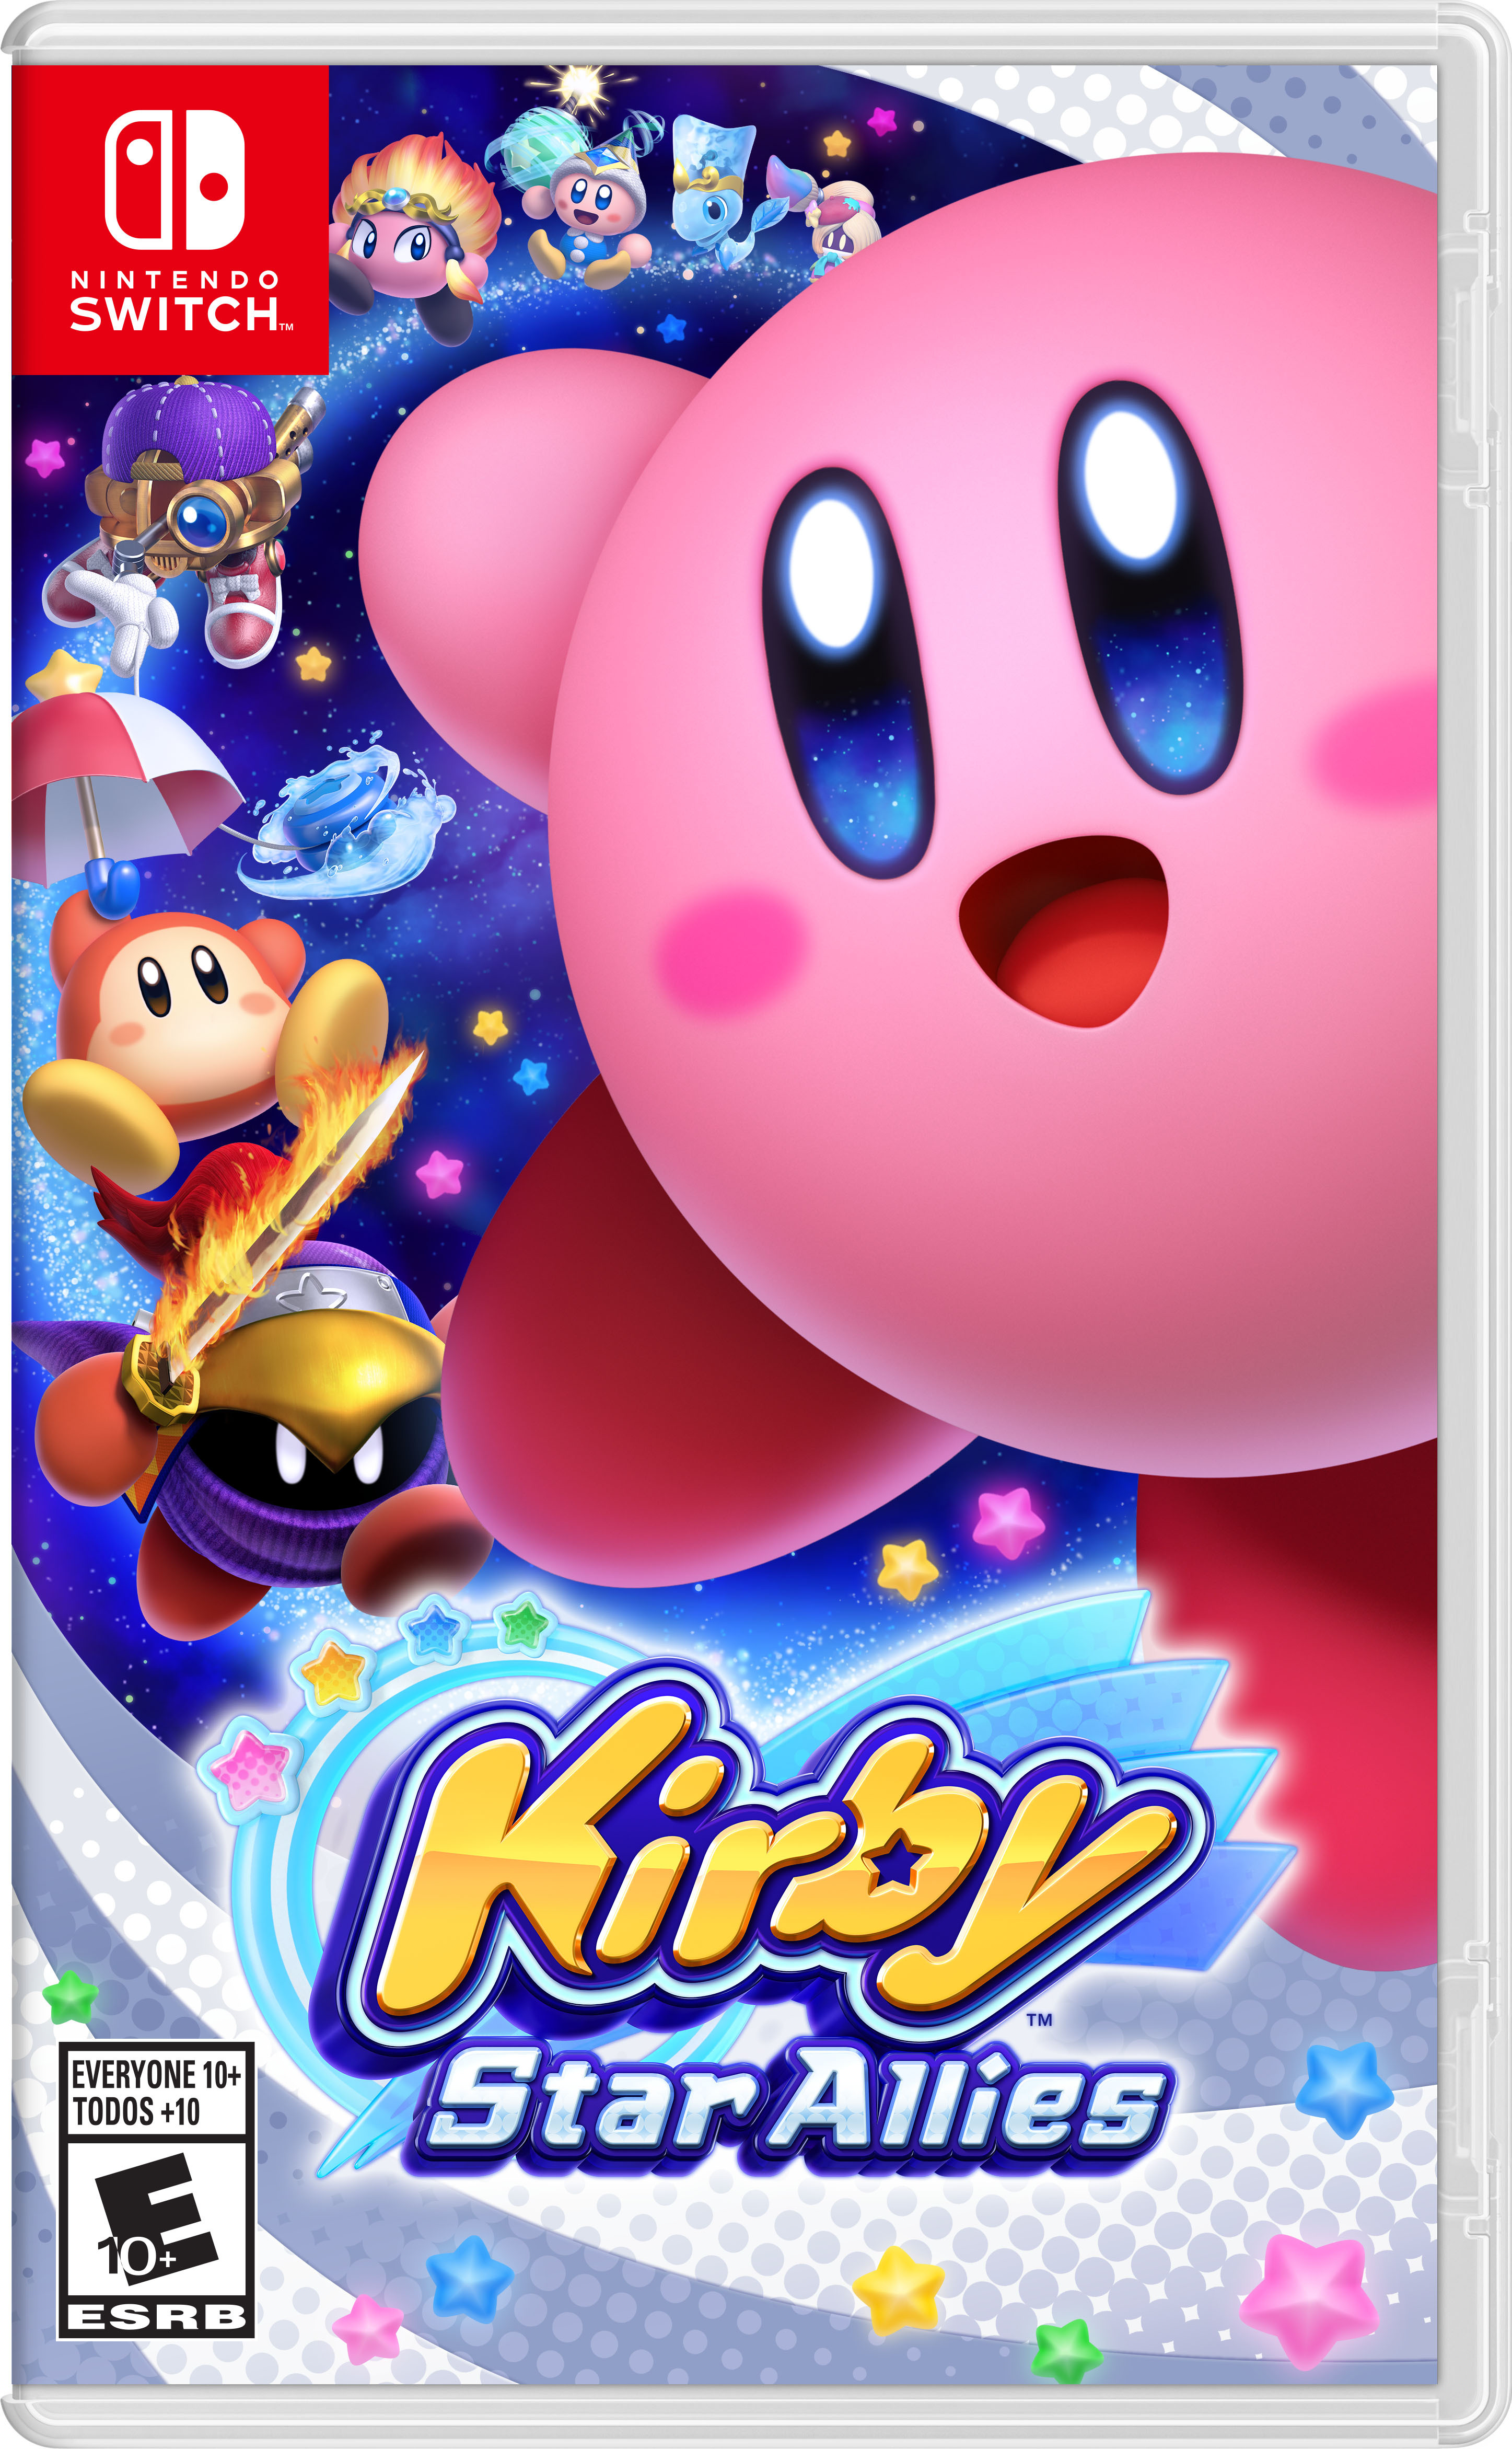 Kirby Encourages Fans to Perform Random Acts of Kindness at